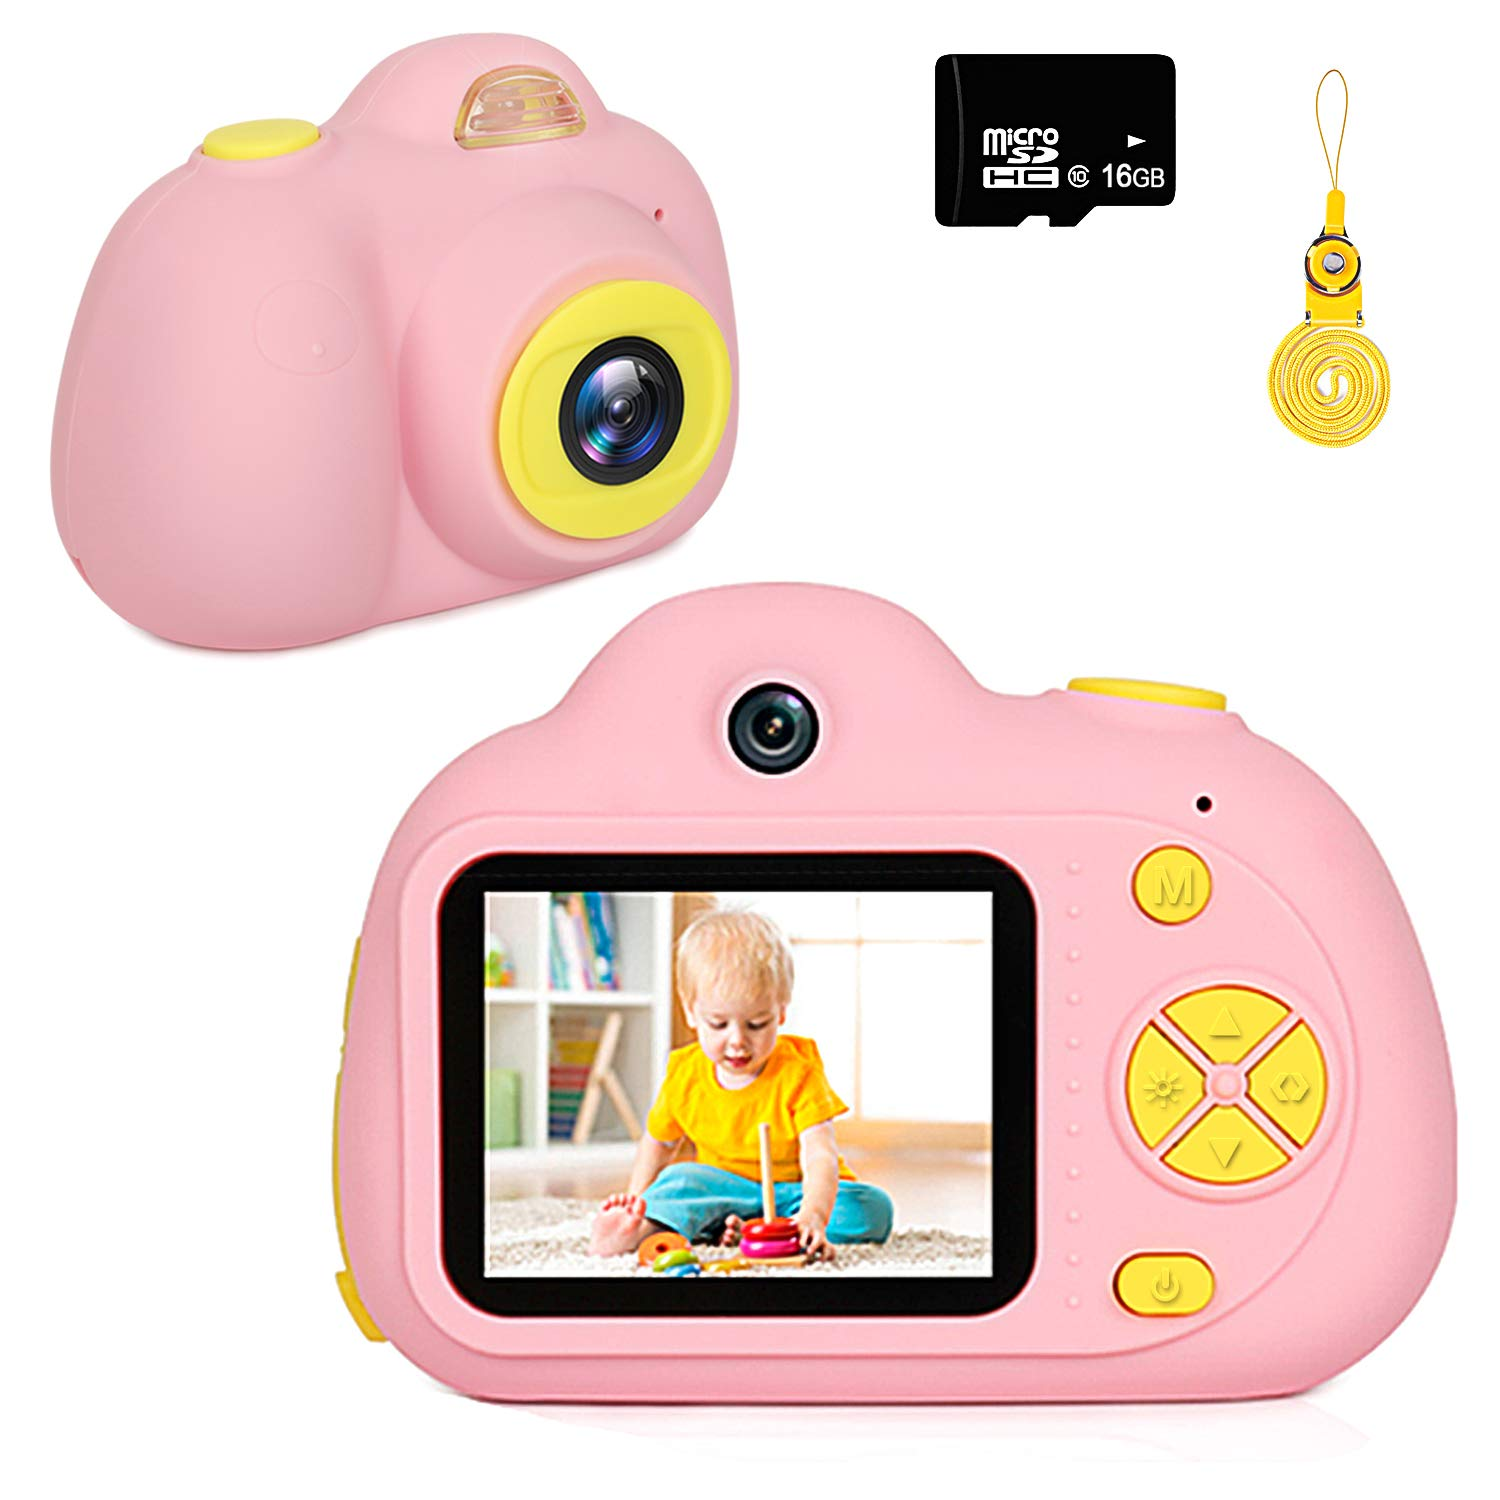 Kids Camera Gifts for Girls 1080P HD,Mini Rechargeable Children Shockproof Digital Front and Rear Selfie Camera Child Camcorder for 3-9 Year Old Kids Gifts waterproof 2.0'' LCD Screen (Pink)